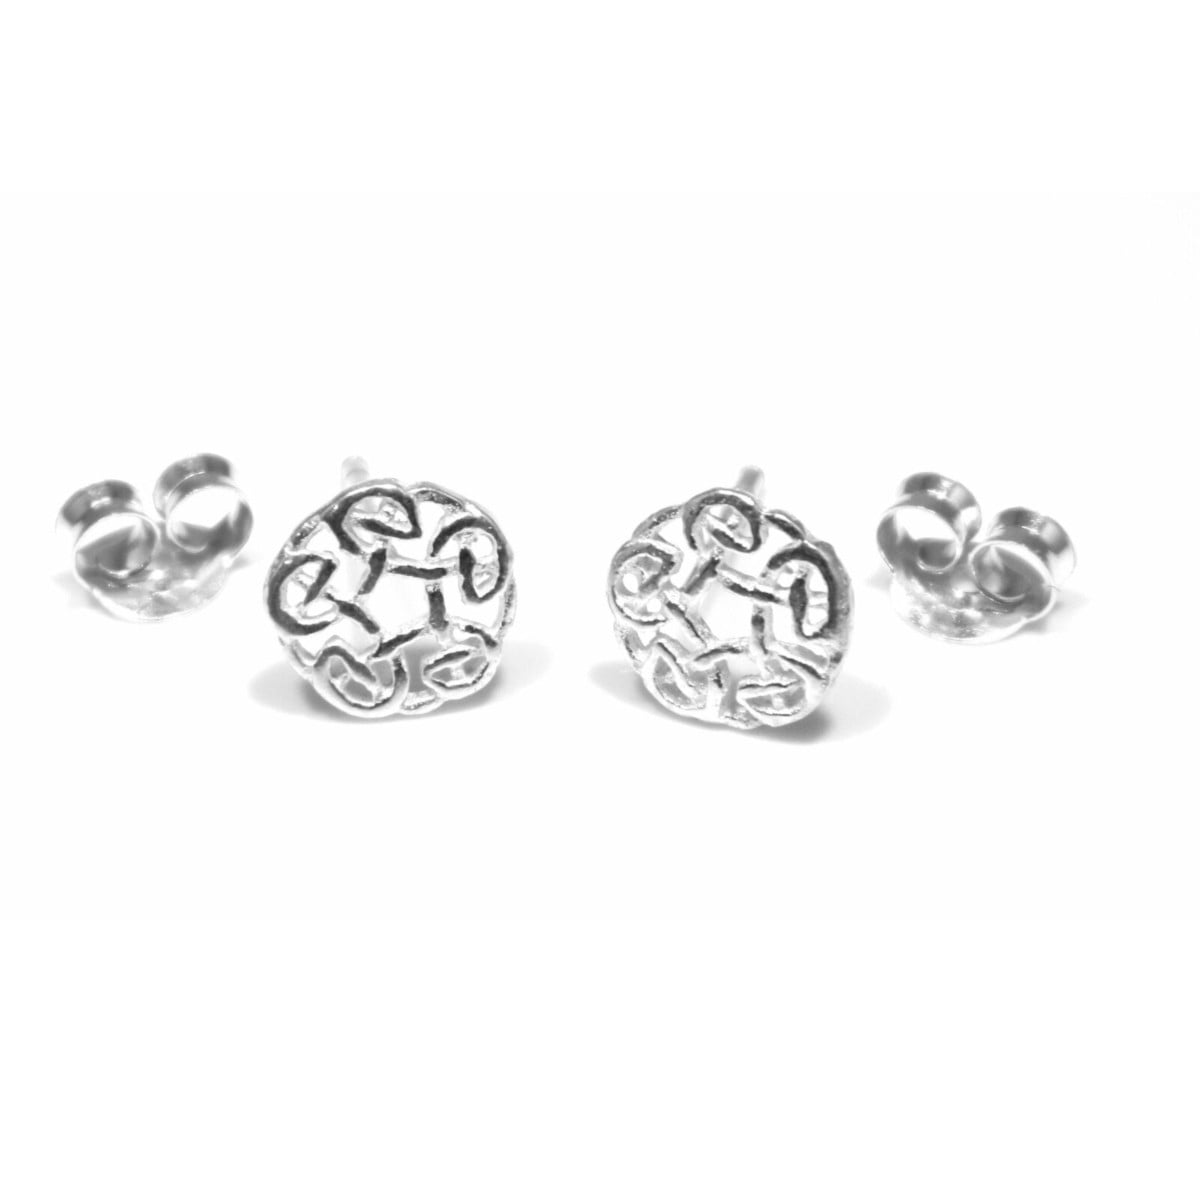 Celtic knot stud earrings in sterling silver